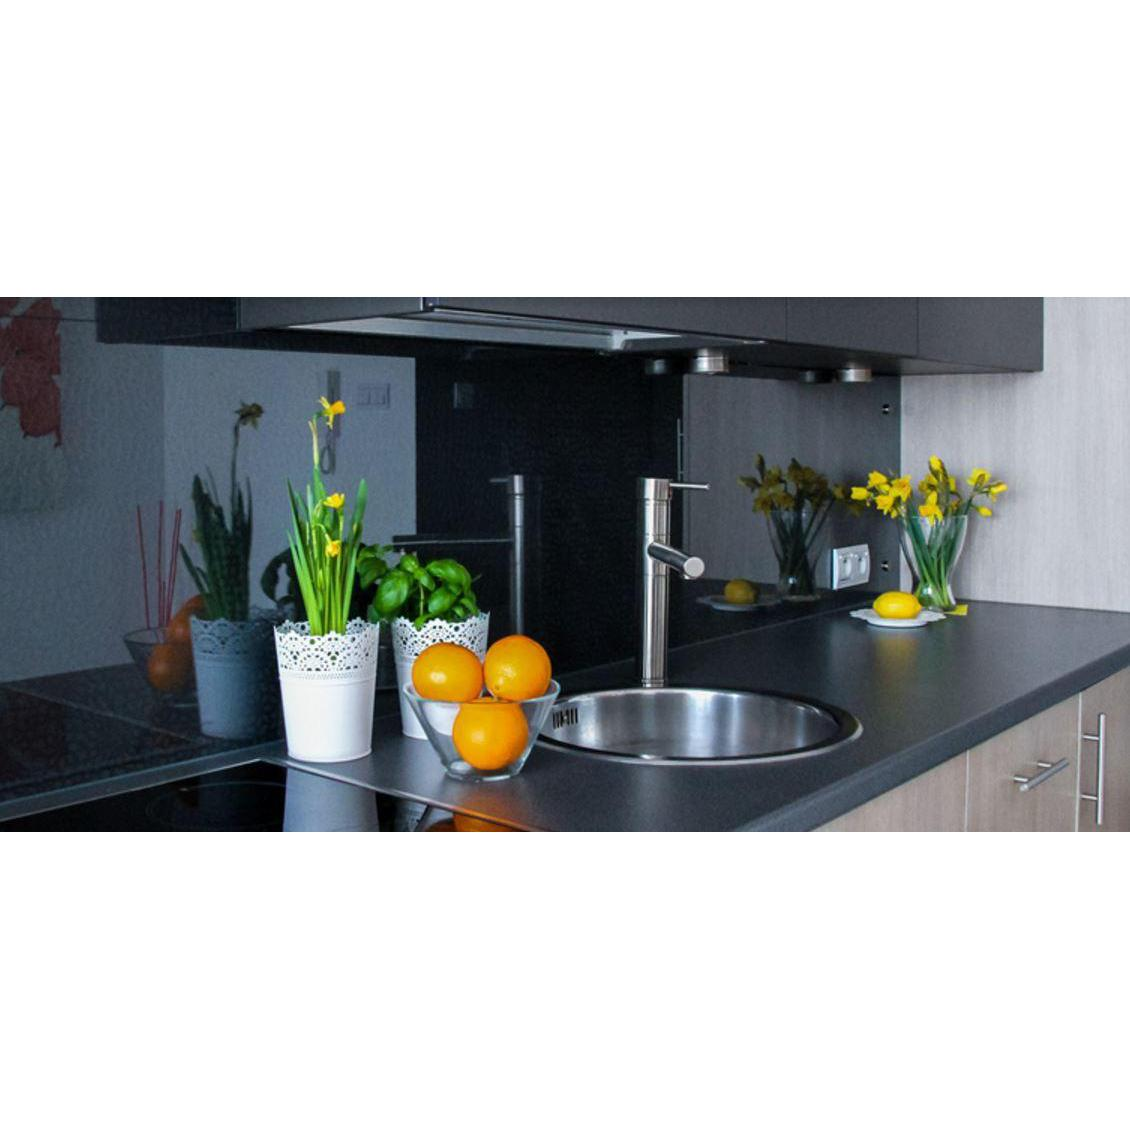 The Cleaning And Gardening Company - Loughborough, Leicestershire  - 01530 484590 | ShowMeLocal.com